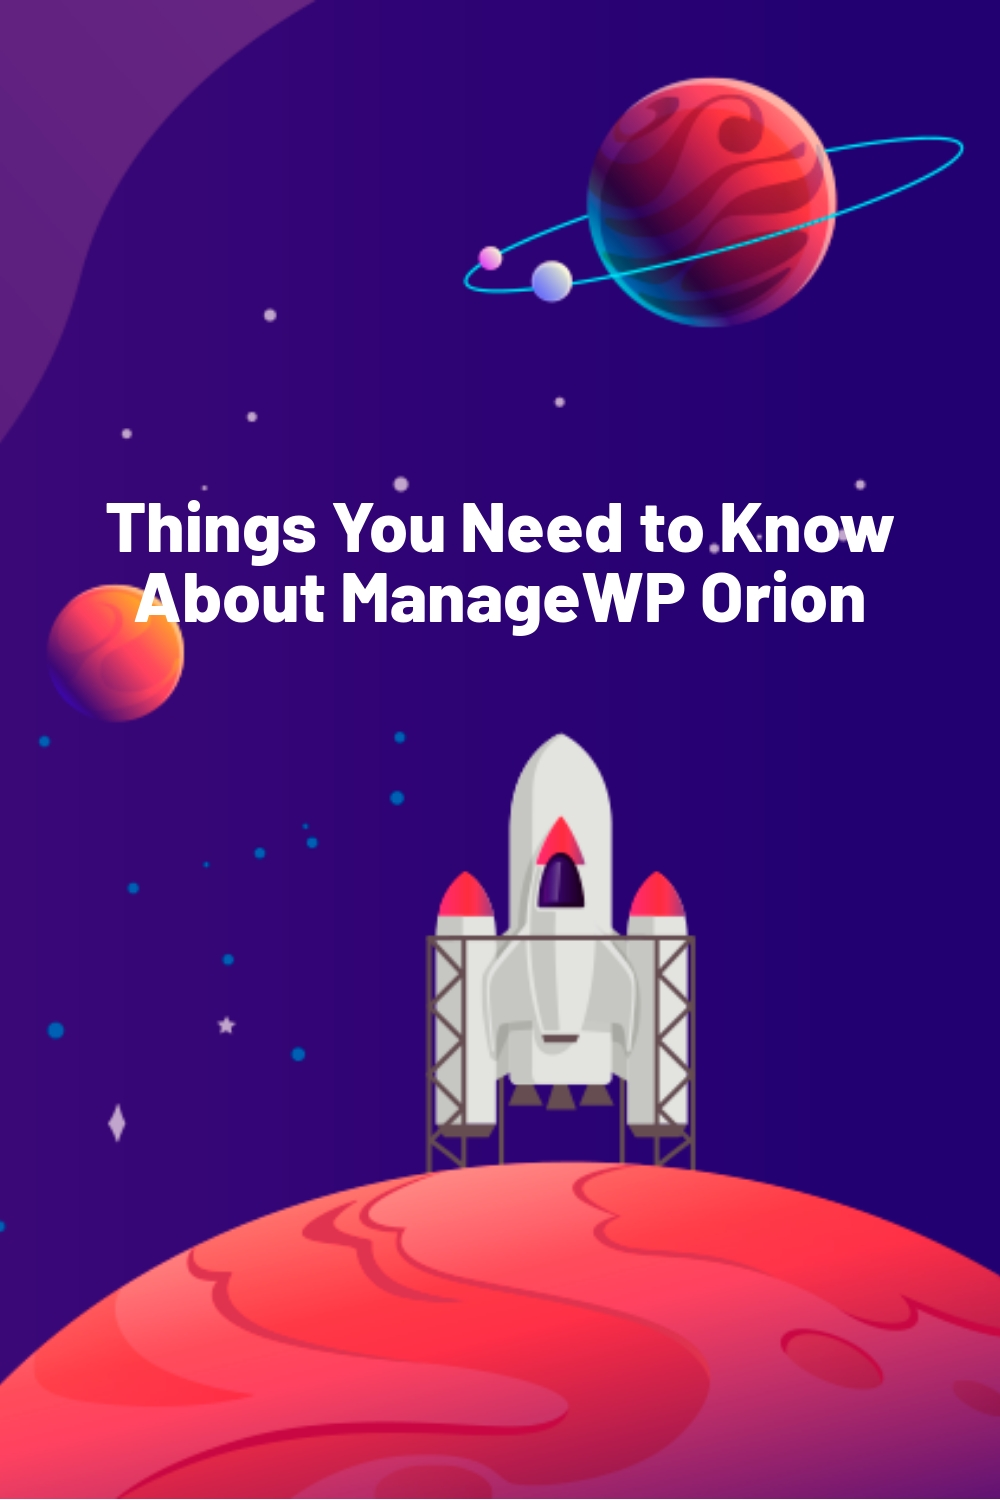 Things You Need to Know About ManageWP Orion